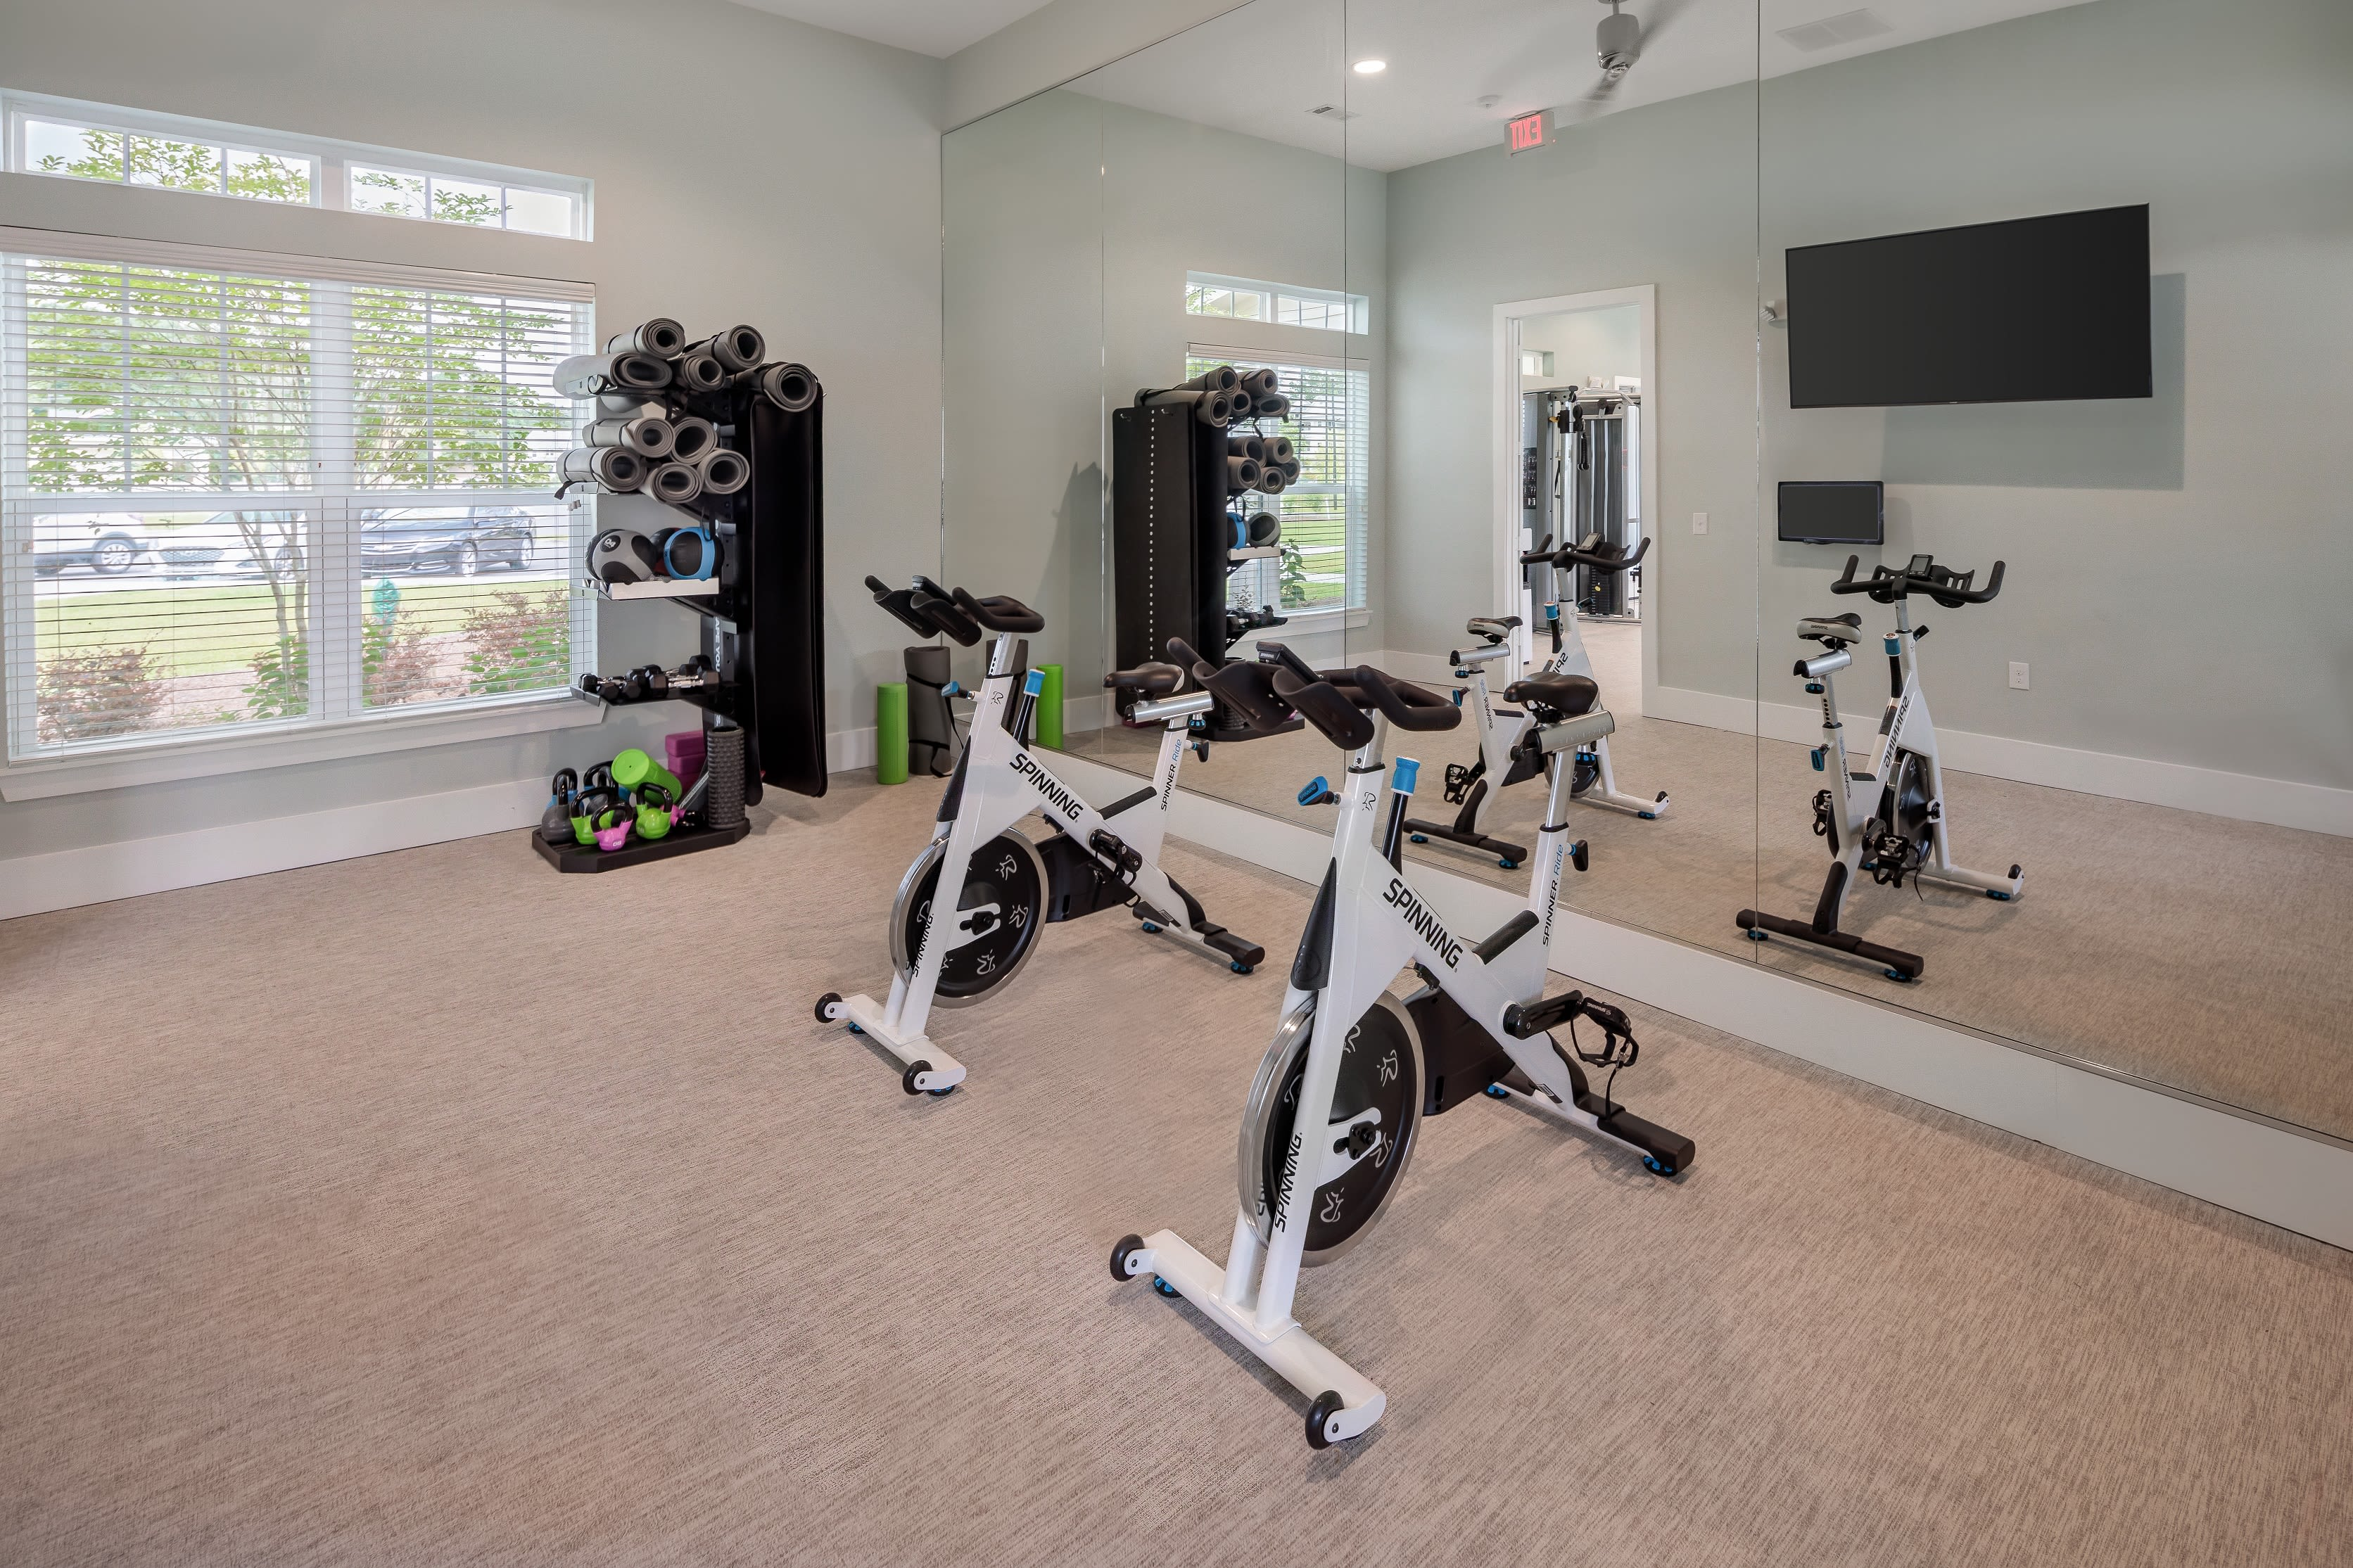 Full state of the art fitness area for residents at The Mason in Ladson, South Carolina